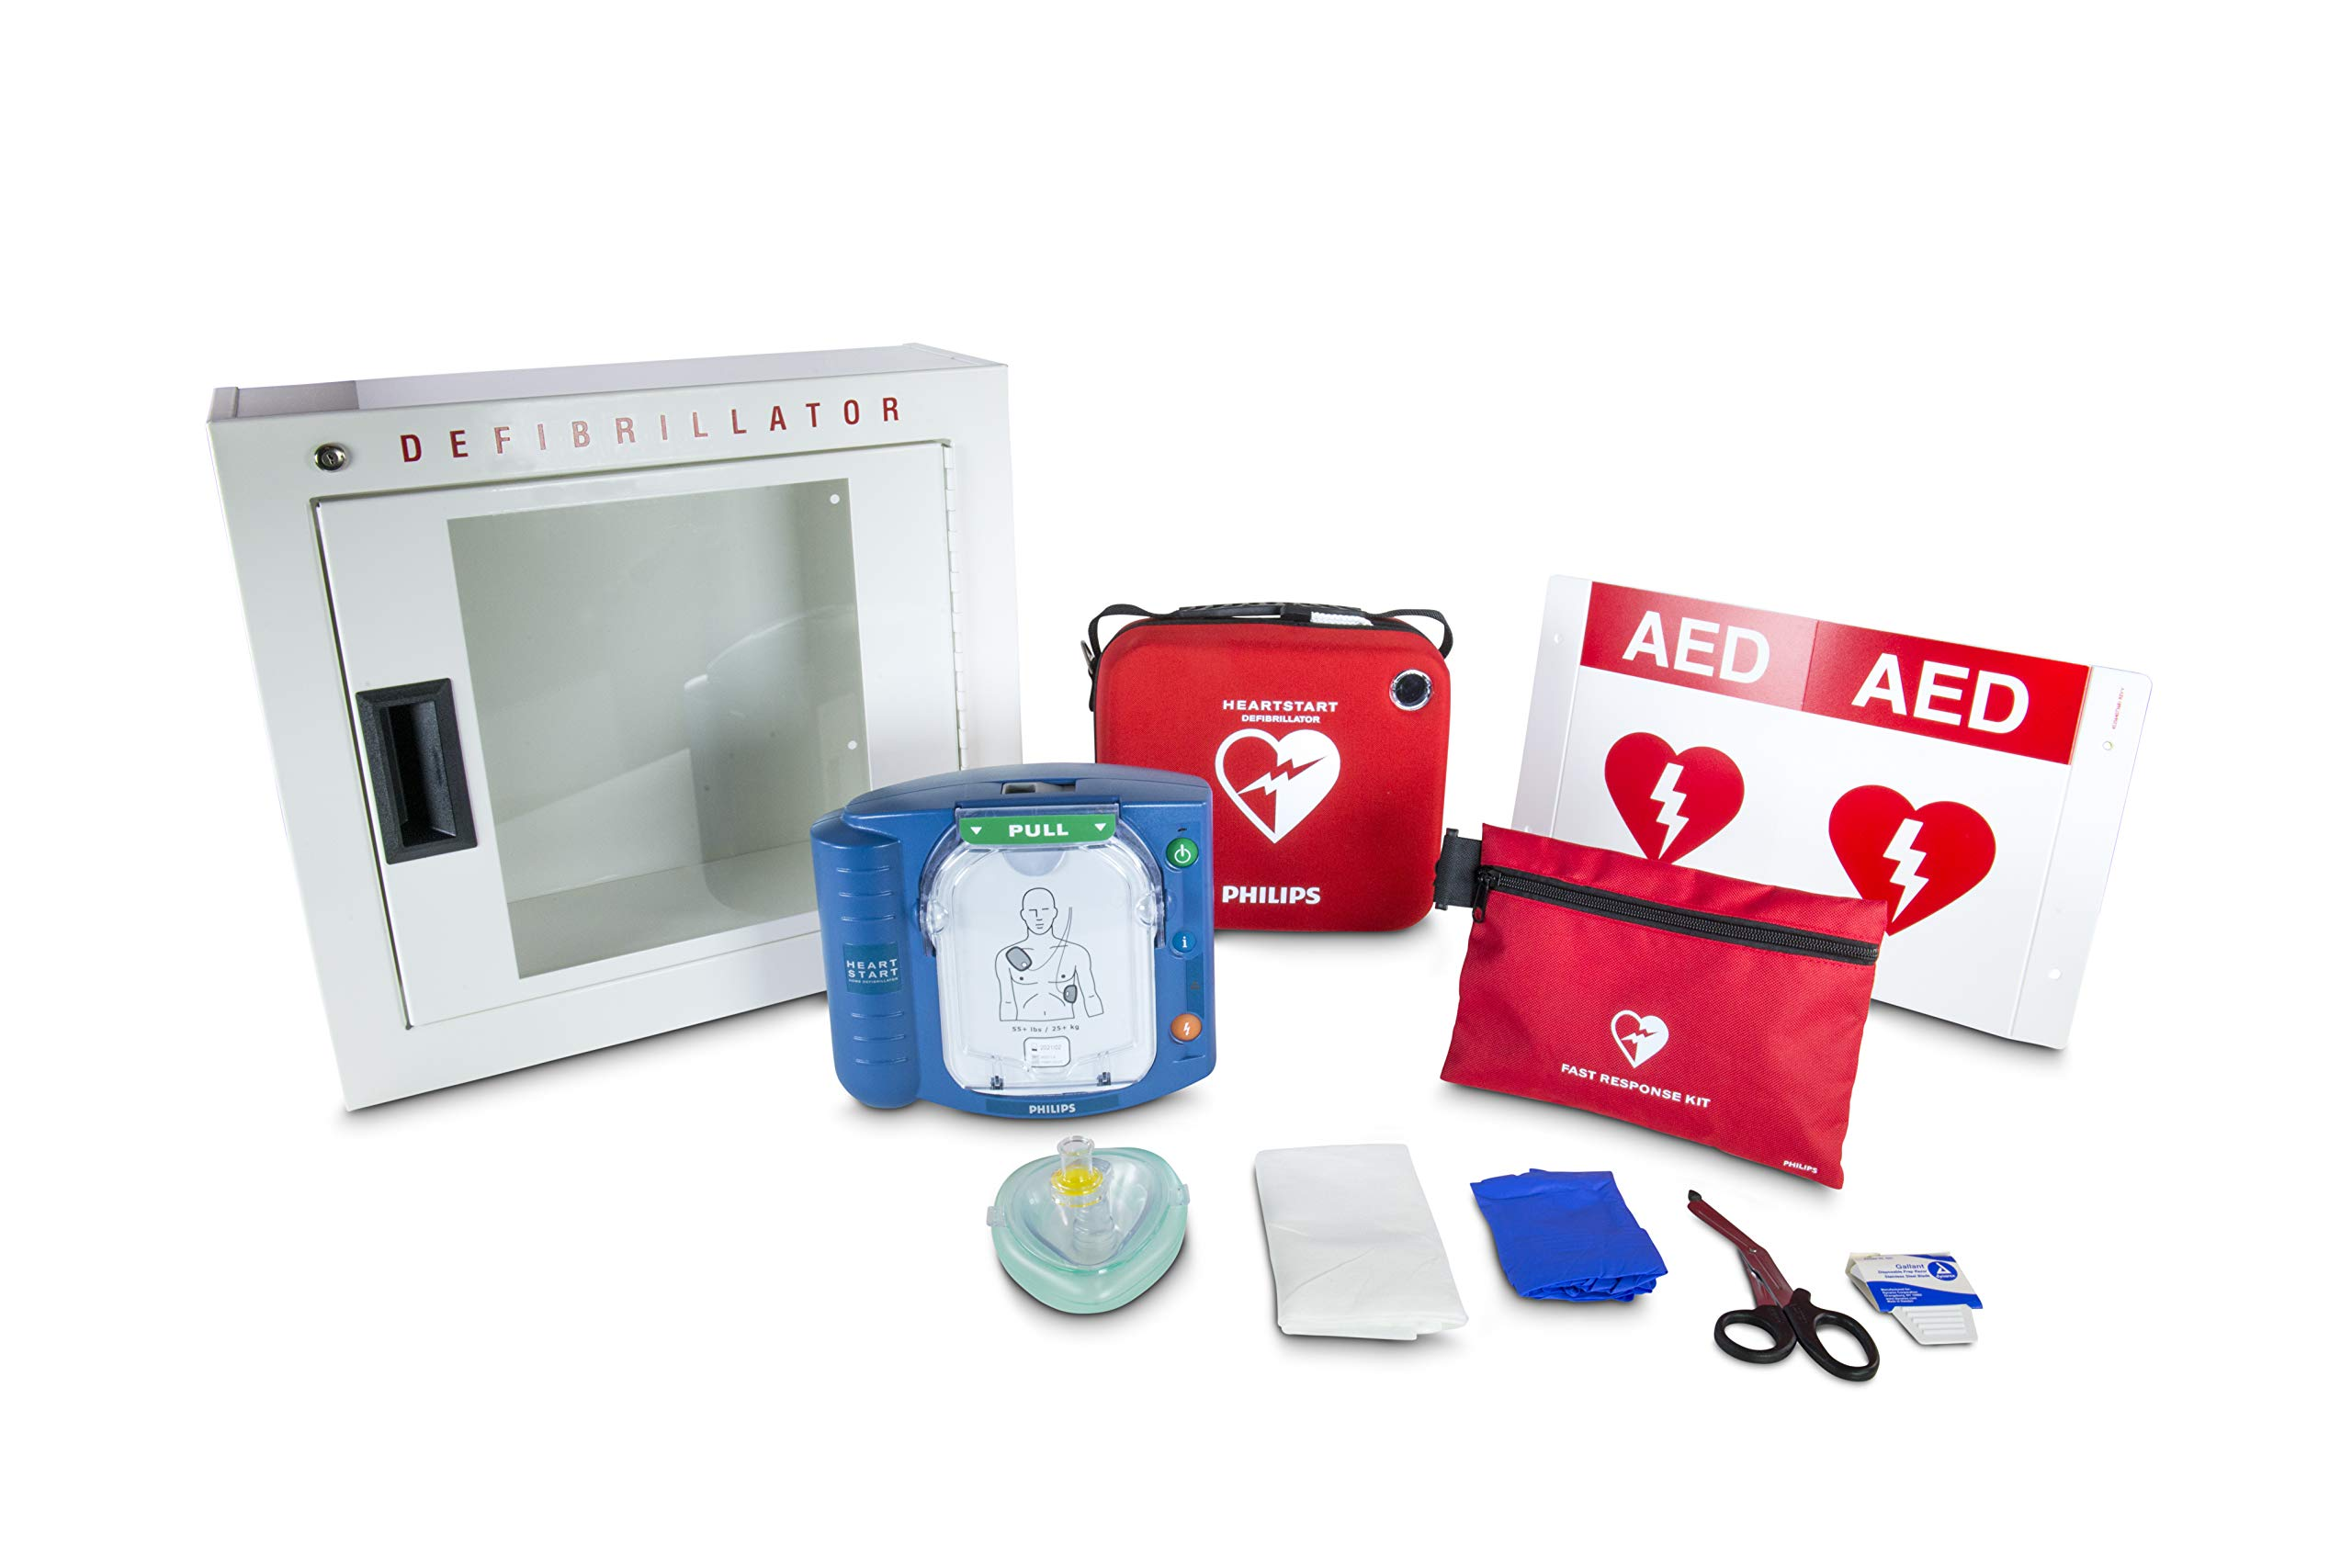 Philips HeartStart OnSite AED Defibrillator Business Package with Slim AED Carry Case, AED Wall Sign, Fast Response Kit and AED Basic Cabinet by HeartStart